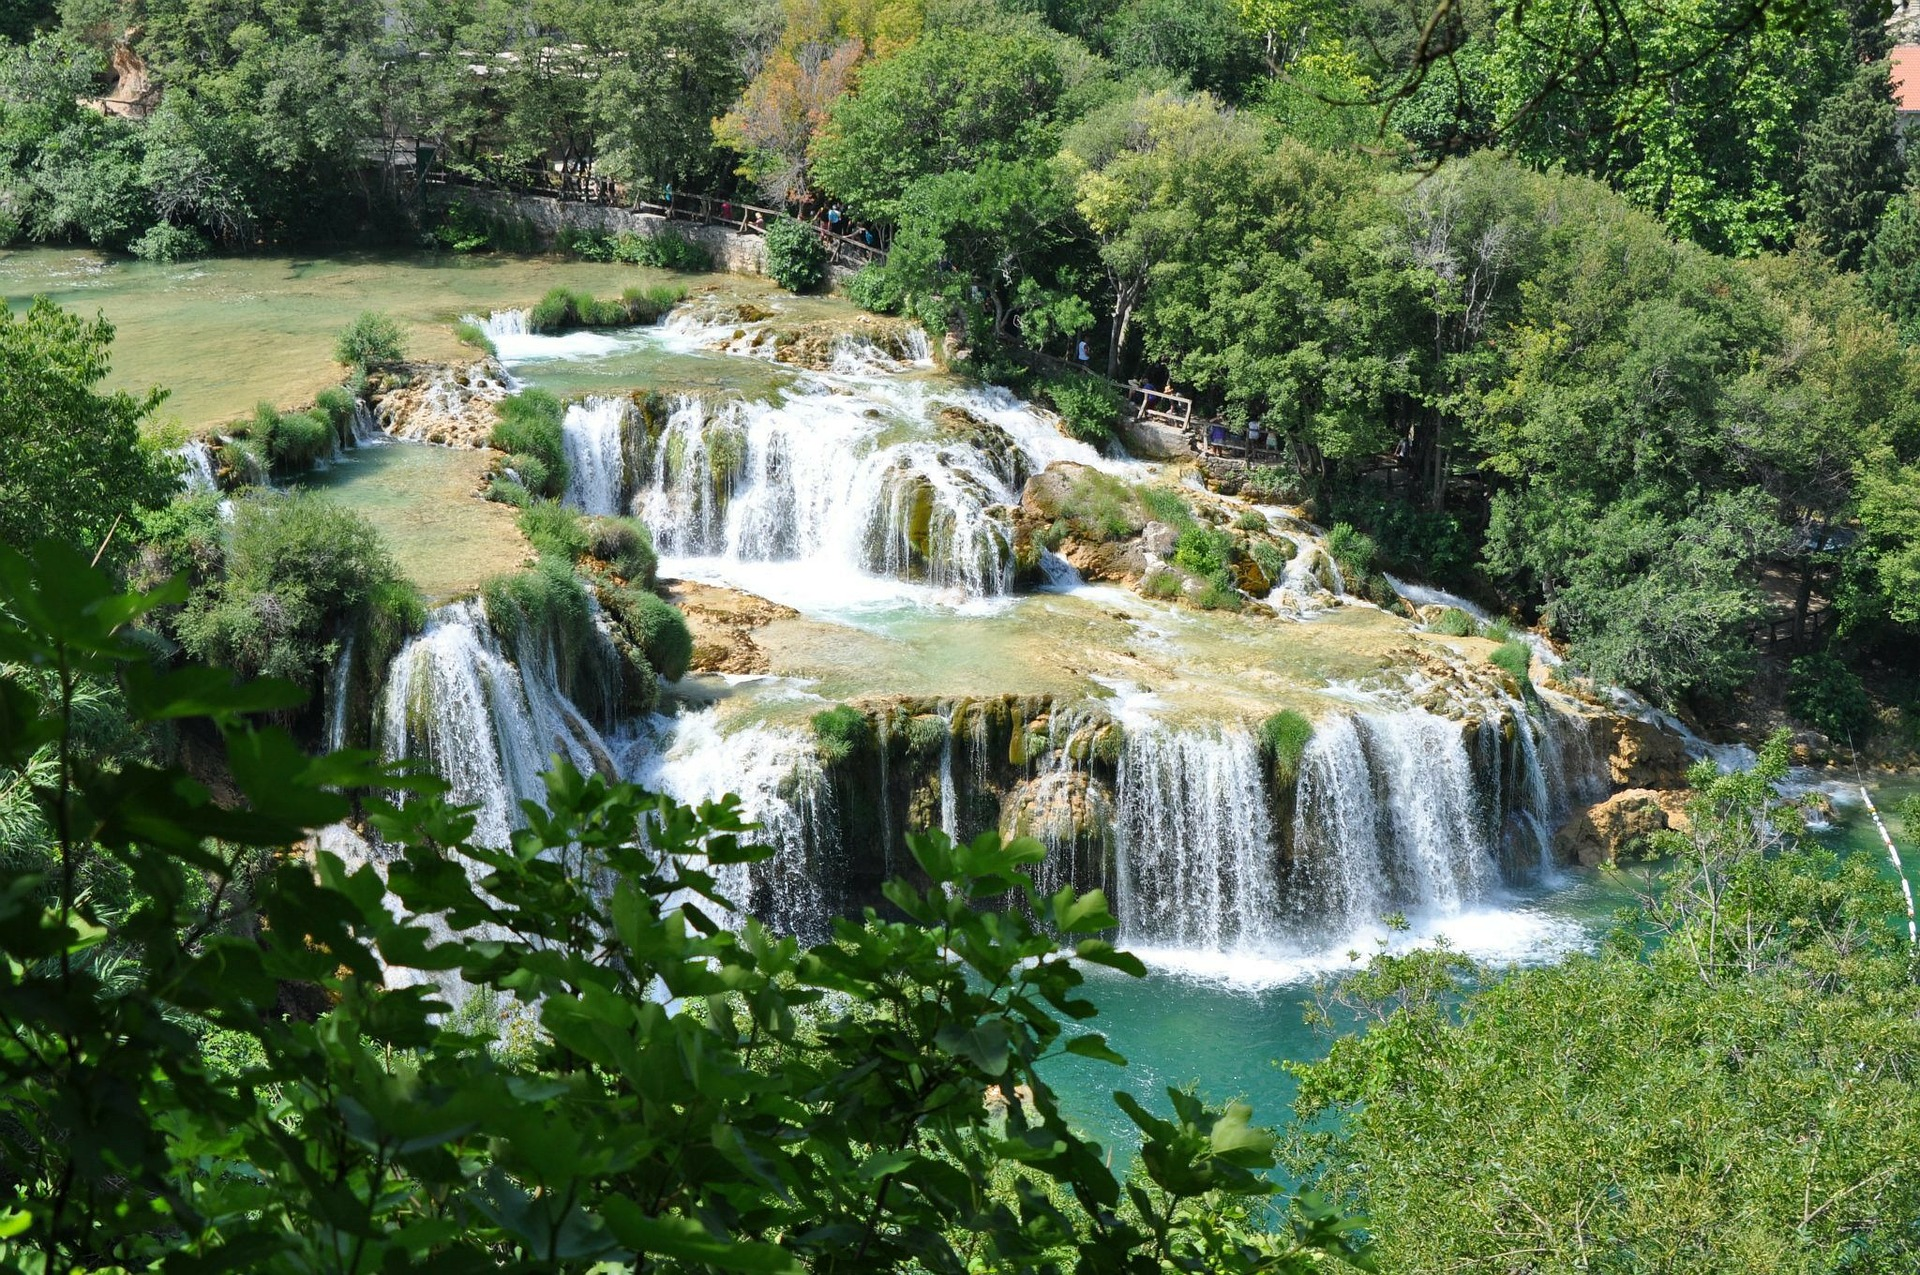 Croatia's Most Interesting Attractions (Apart from Dubrovnik)